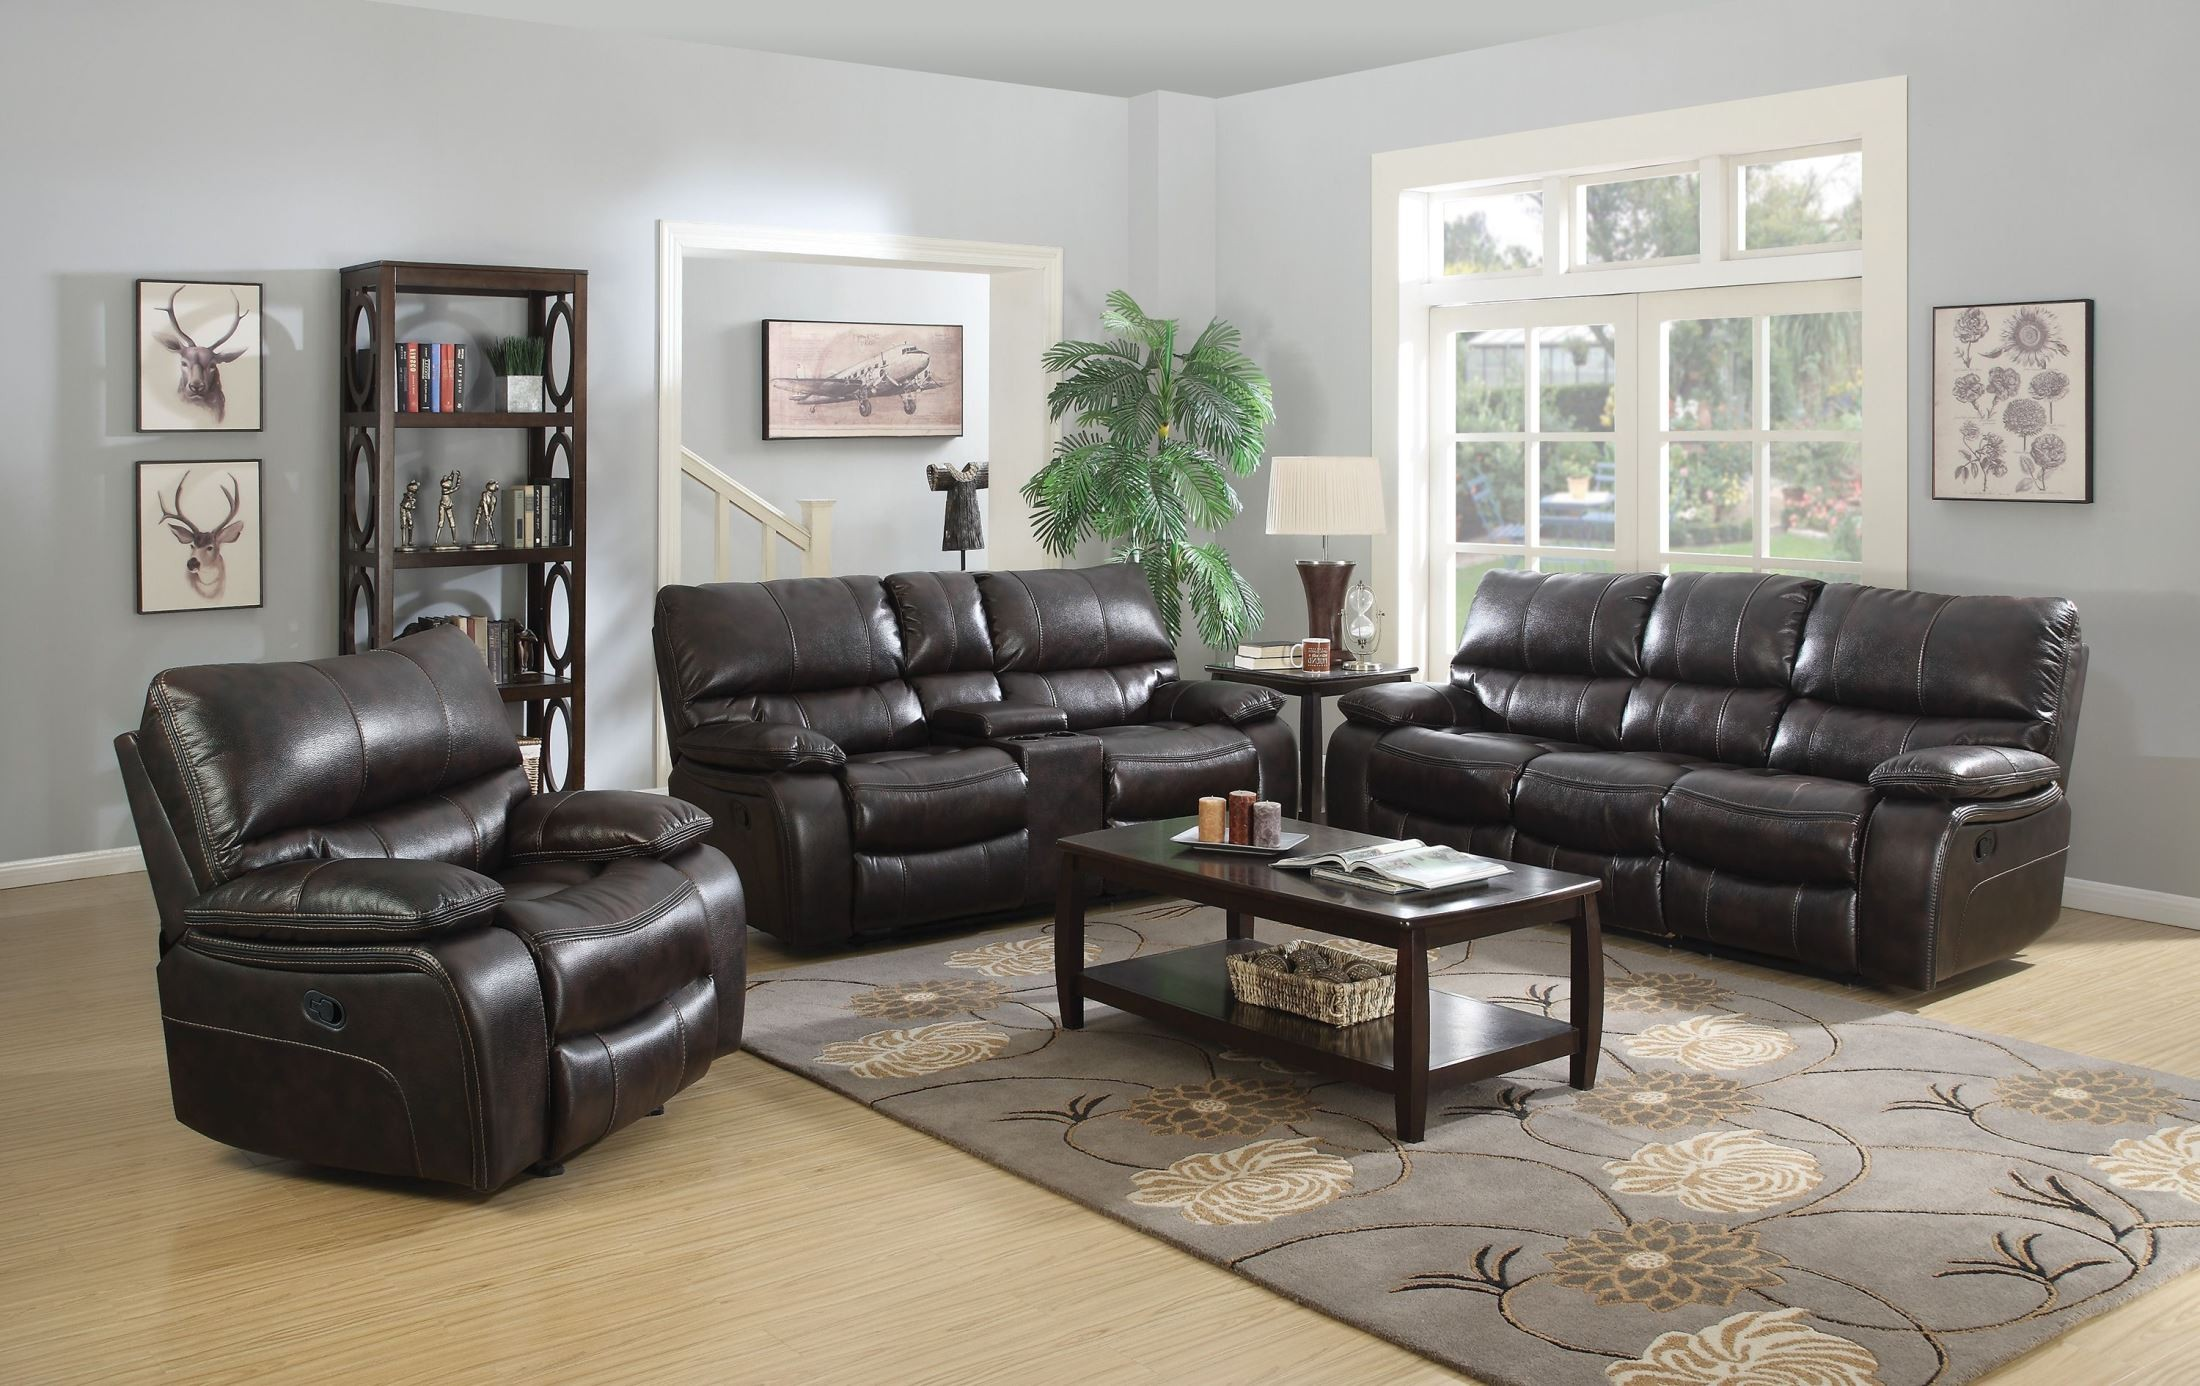 Willemse dark brown reclining living room set from coaster for Dark brown living room set